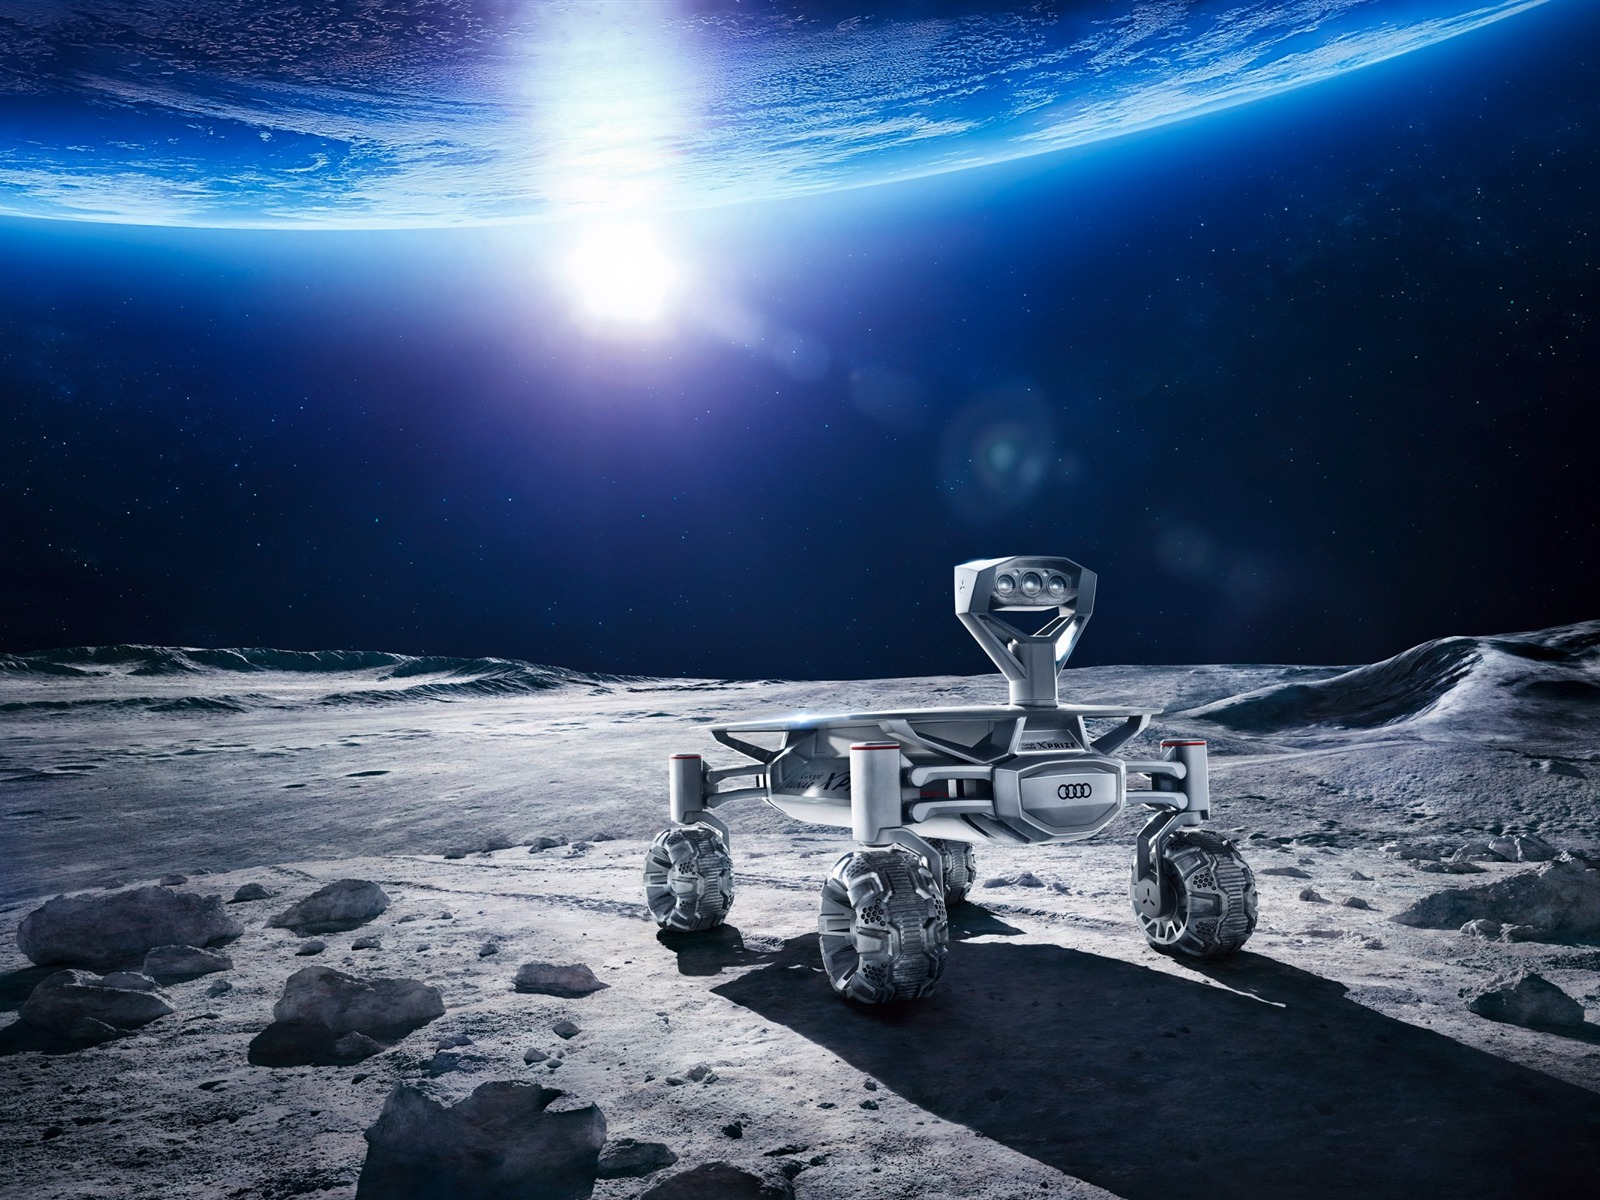 Audi moon rover hd-Universe HD Wallpaper - 1600x1200 wallpaper download